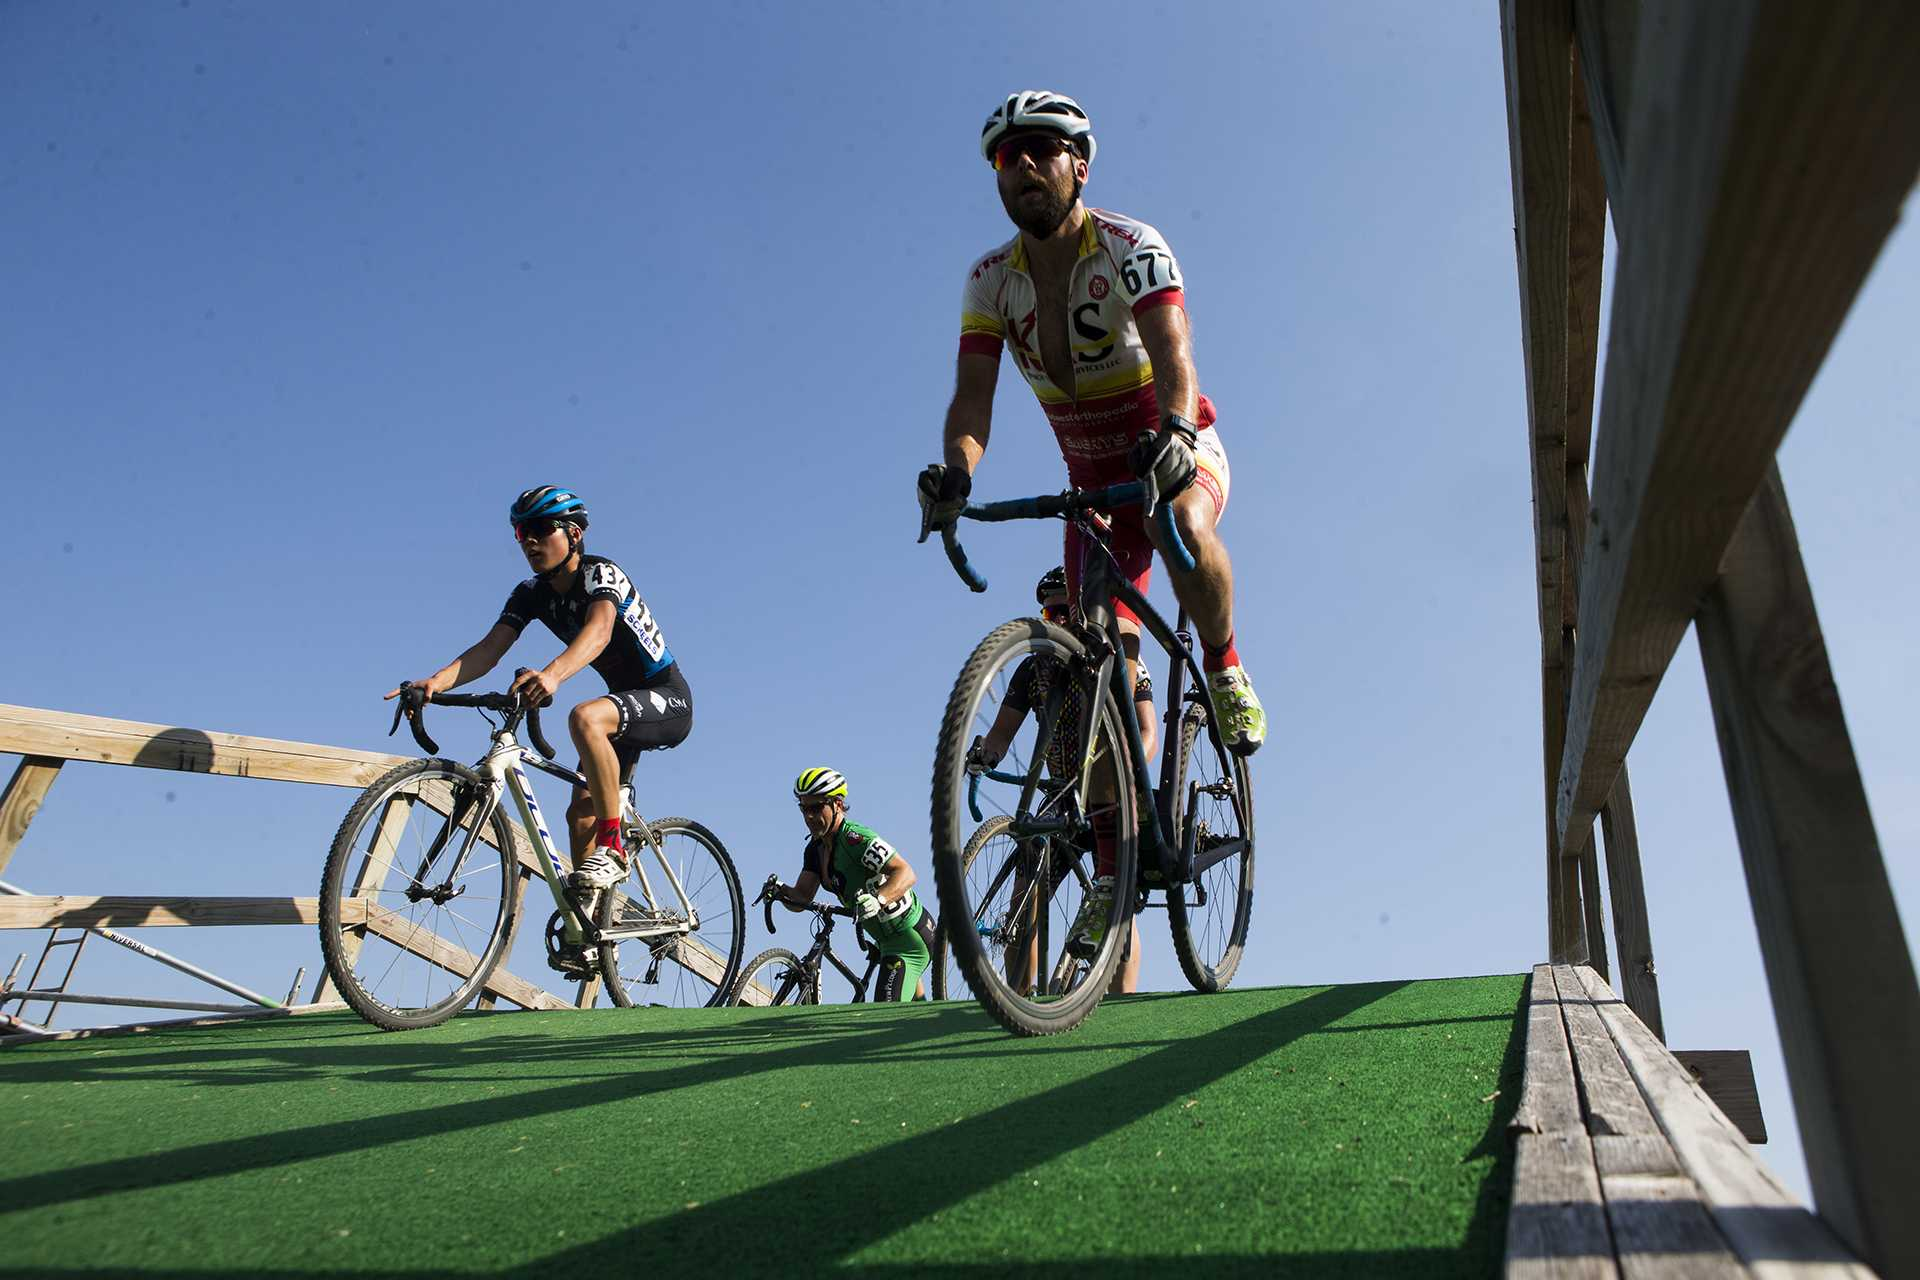 Cyclocross riders roll down a flyover during the first day of Jingle Cross at the Johnson County fairgrounds on Friday, Sept. 15, 2017. The three day cyclocross event will host events Friday night, masters ones on Saturday under the lights, and the UCI Telenet Cyclocross World Cup to close out the weekend on Sept. 17. Joseph Cress/The Daily Iowan)